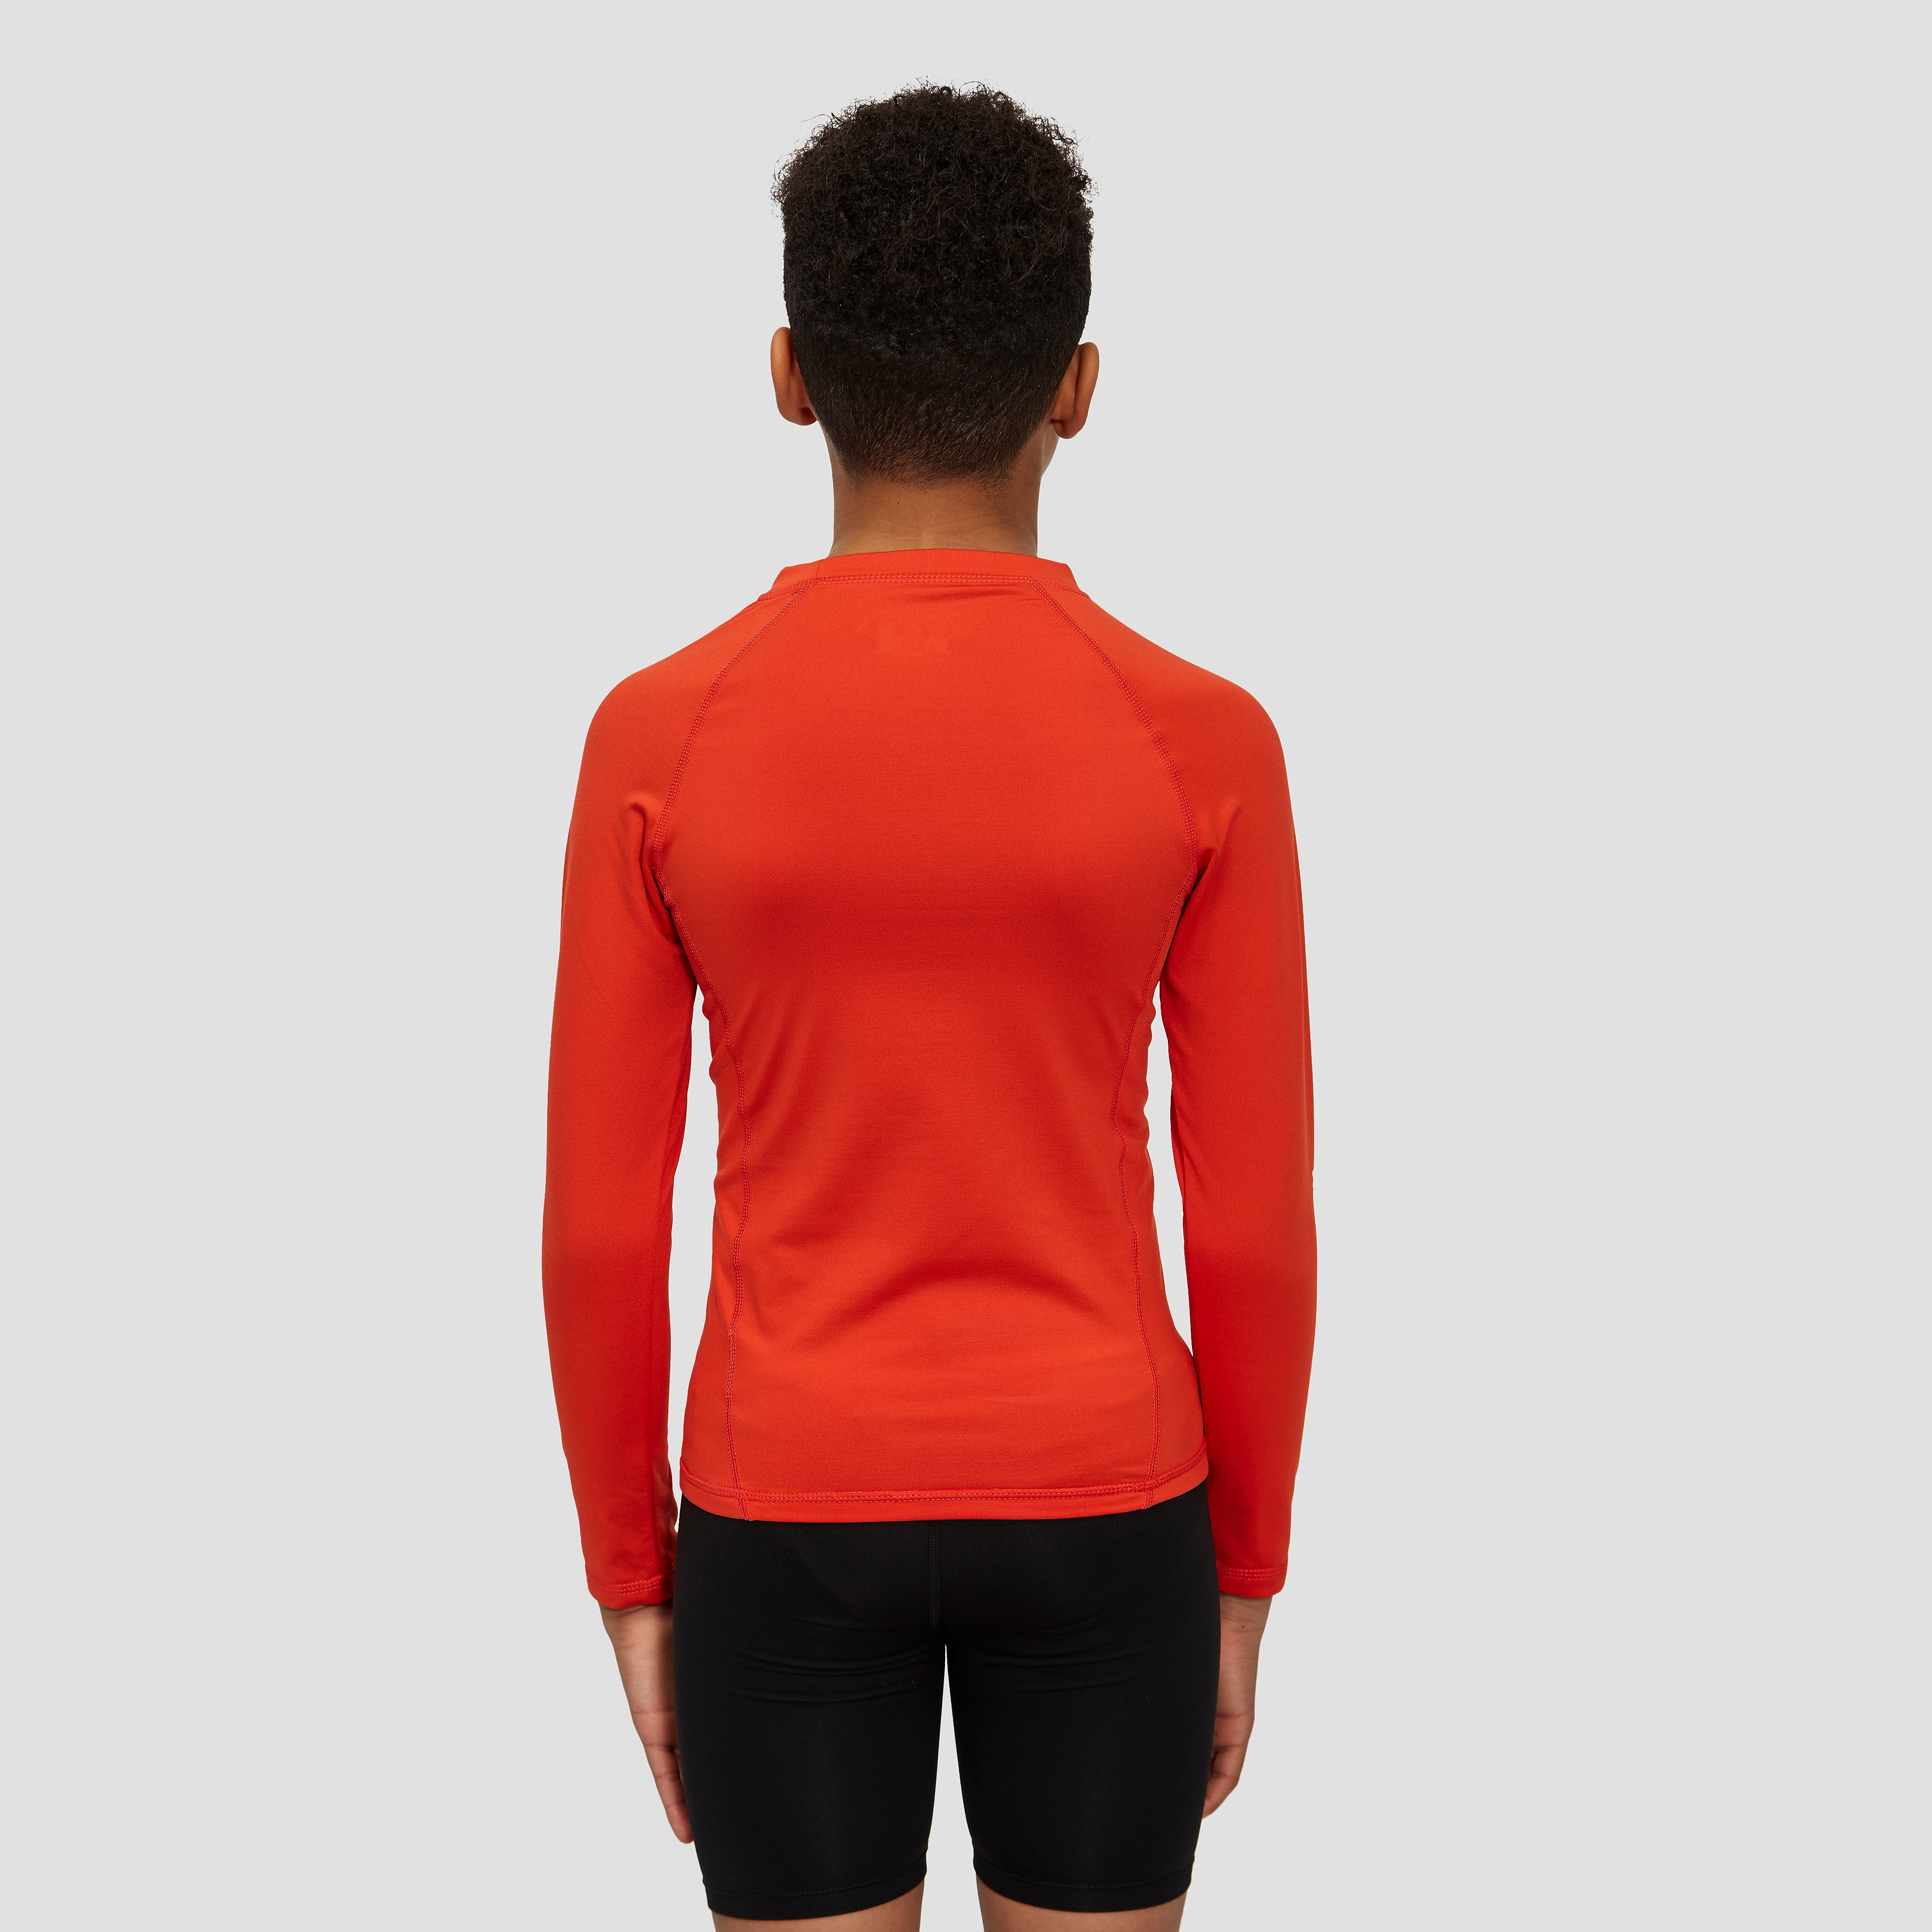 KooGa Elite Junior Baselayer